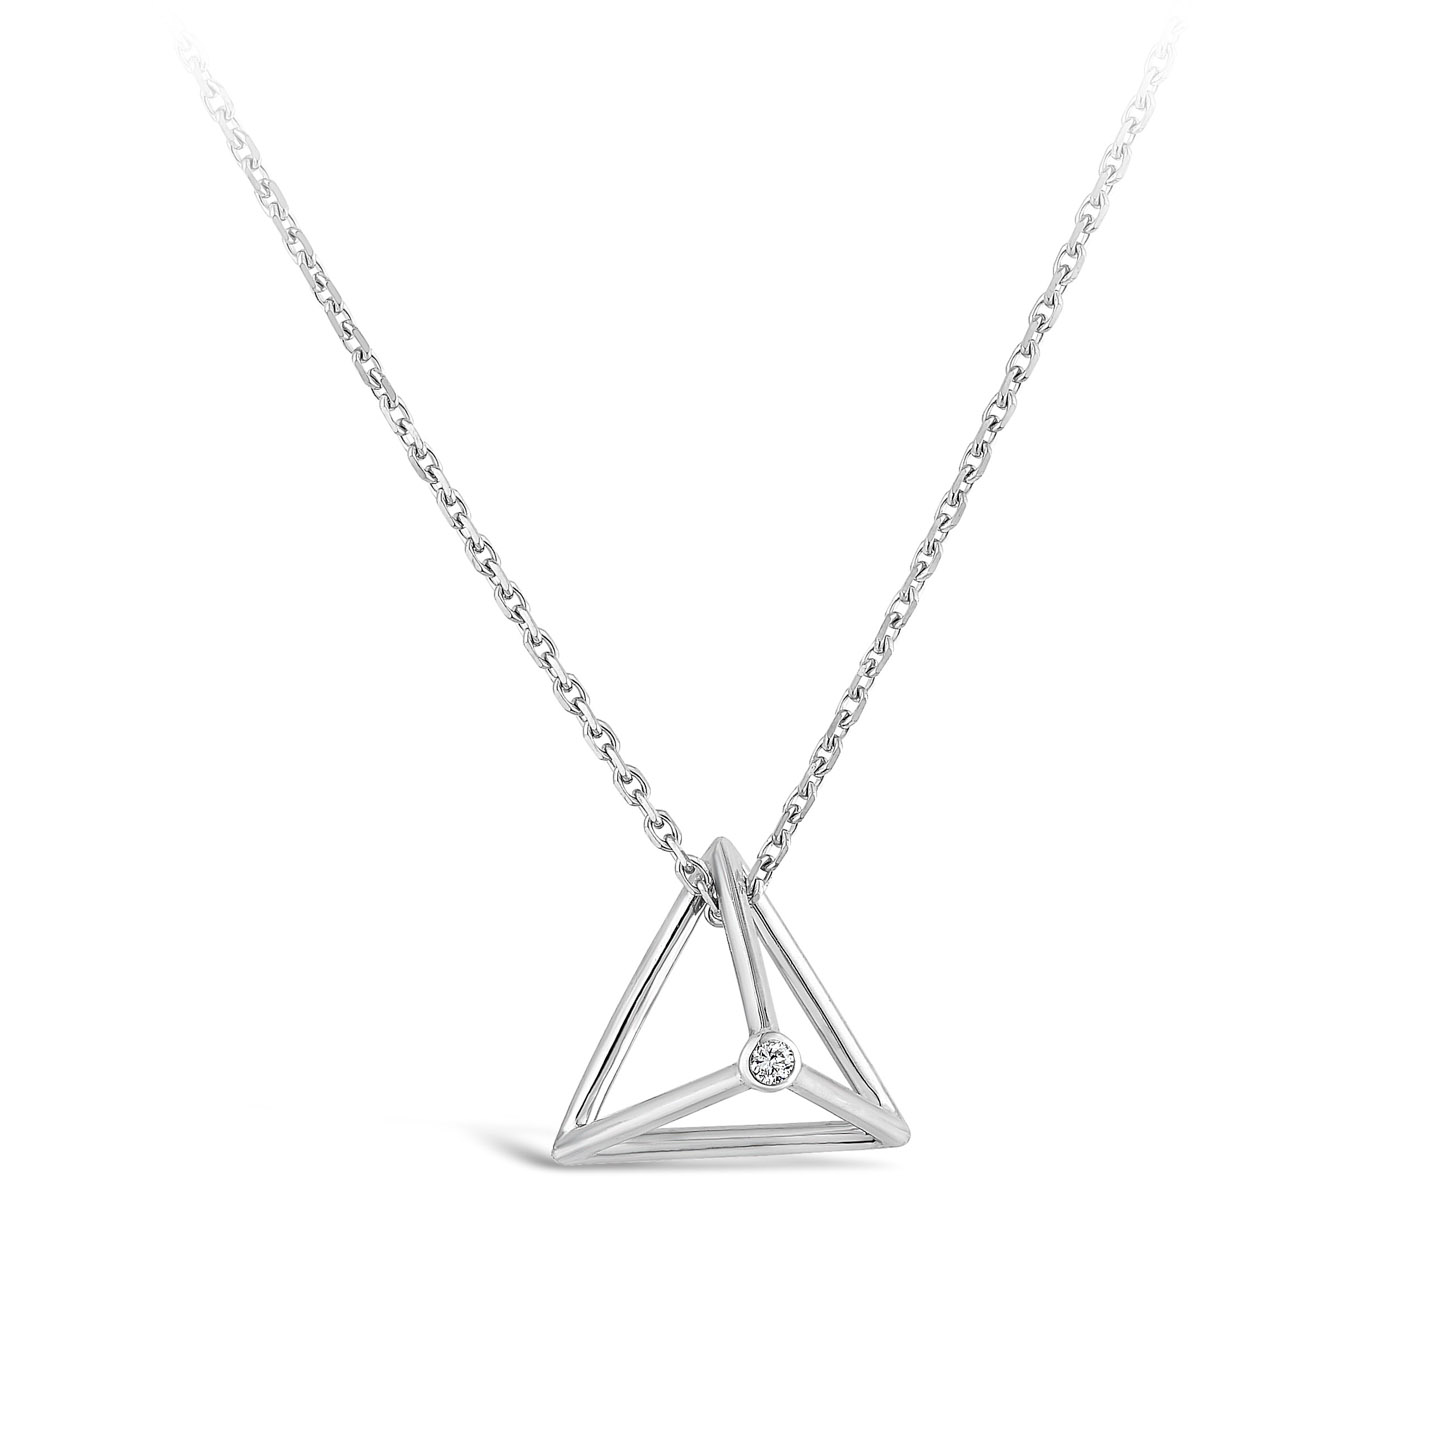 Collier Pyramide Et diamant or blanc